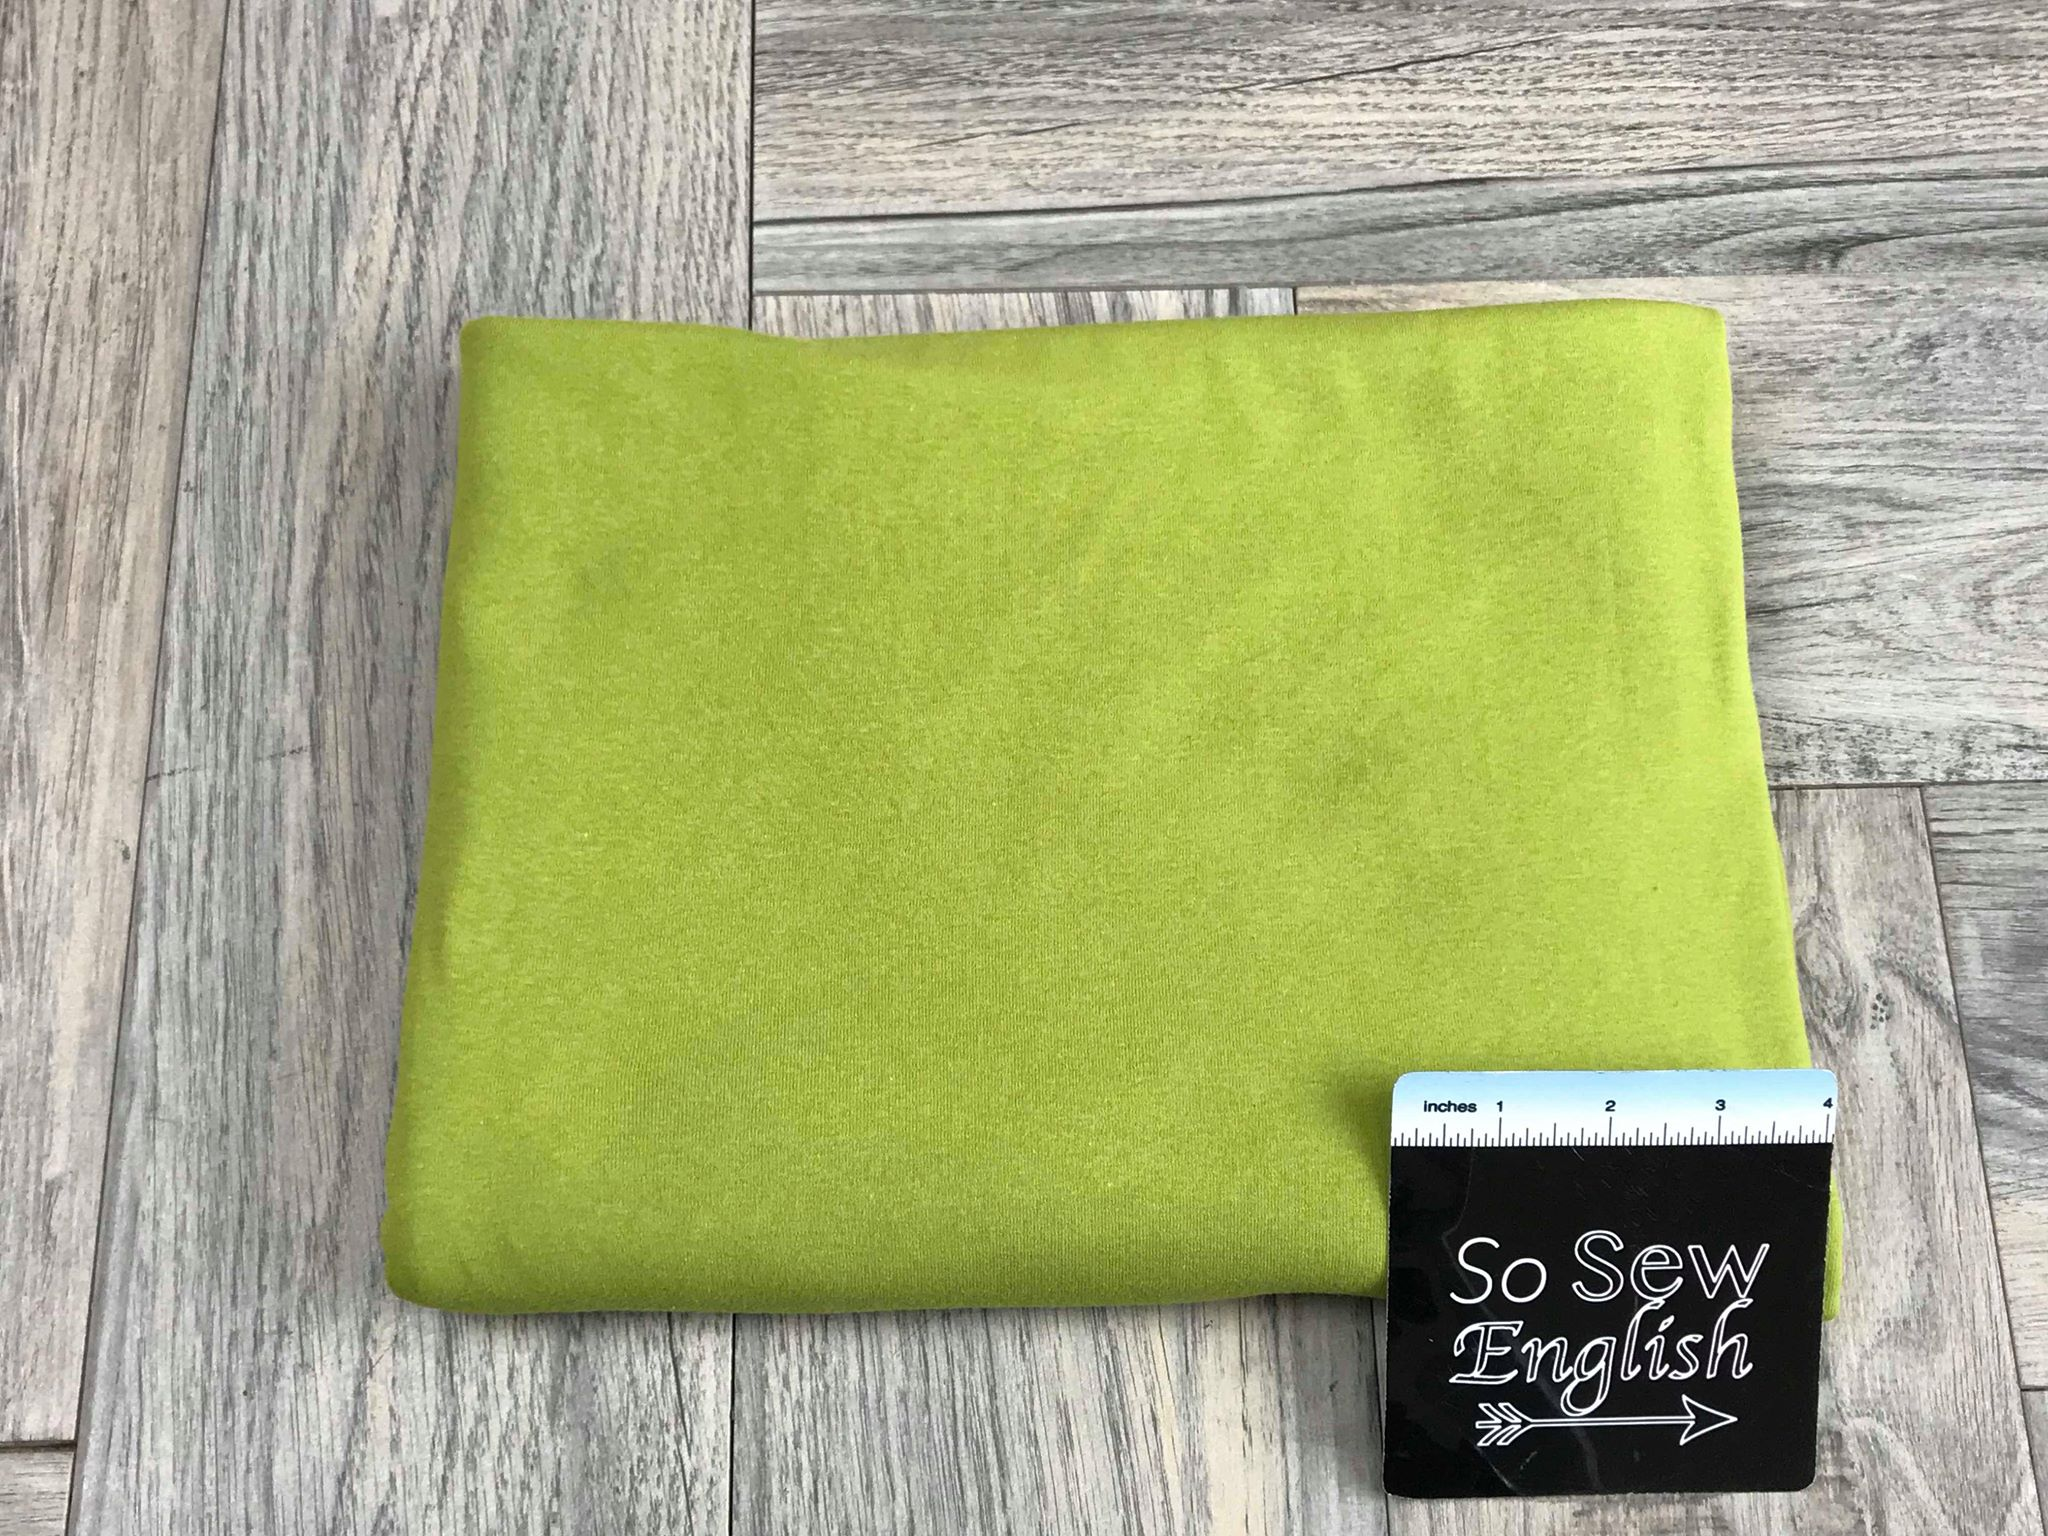 Solid Green -1x1 Rib Cotton Spandex - By The Yard